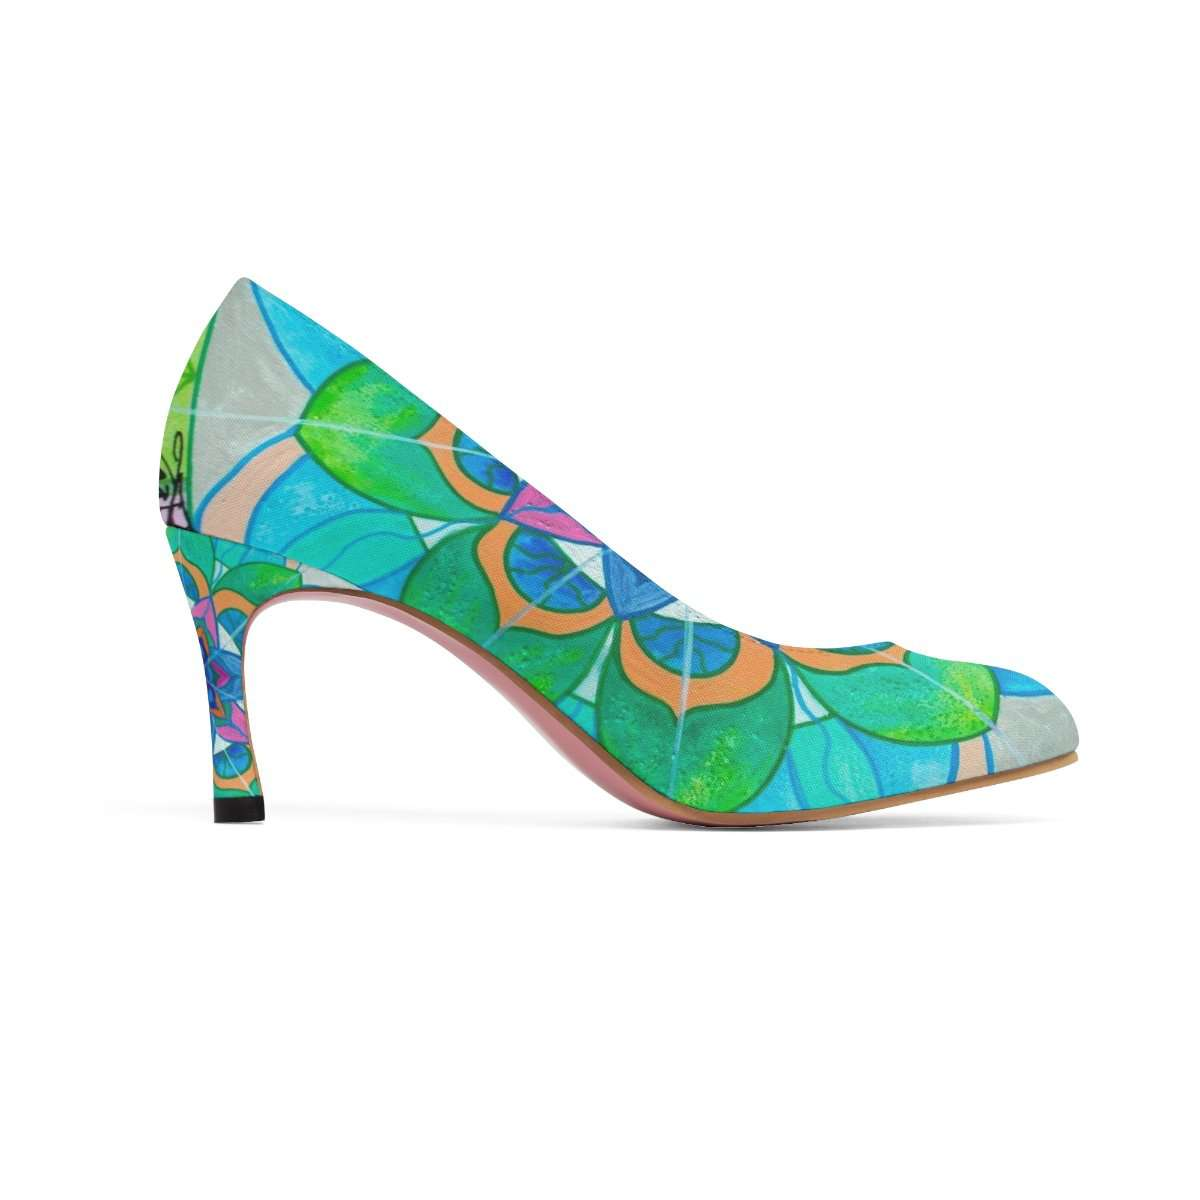 Openness - Women's High Heels